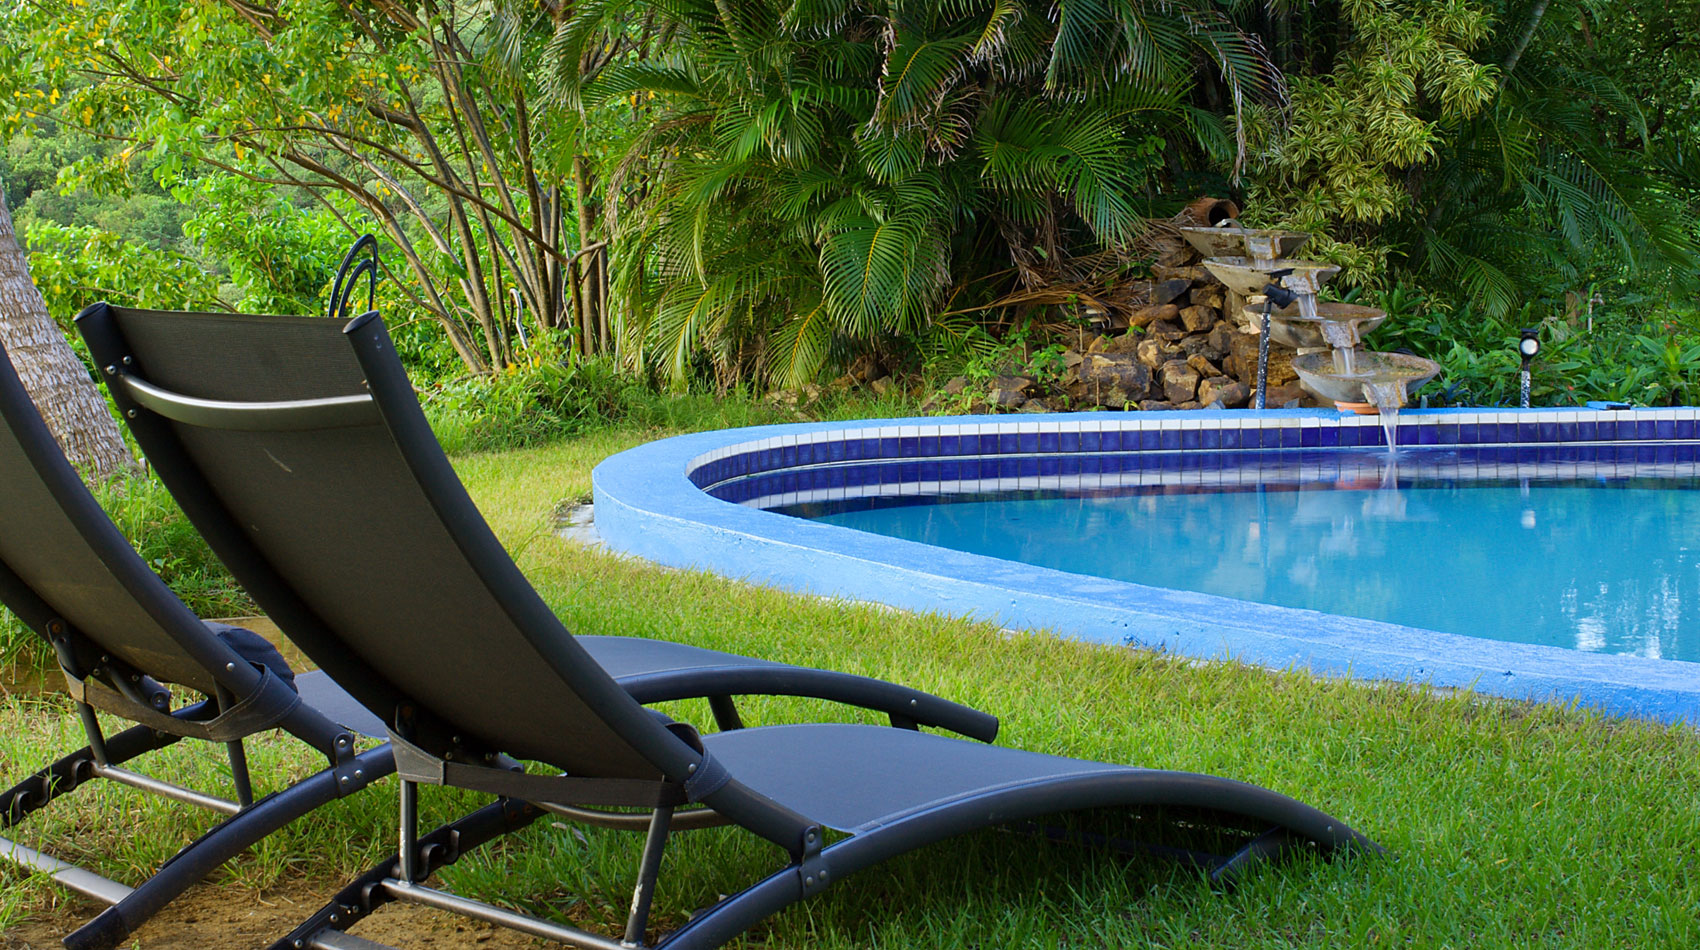 Relax by the pool at Hilltop Culebra